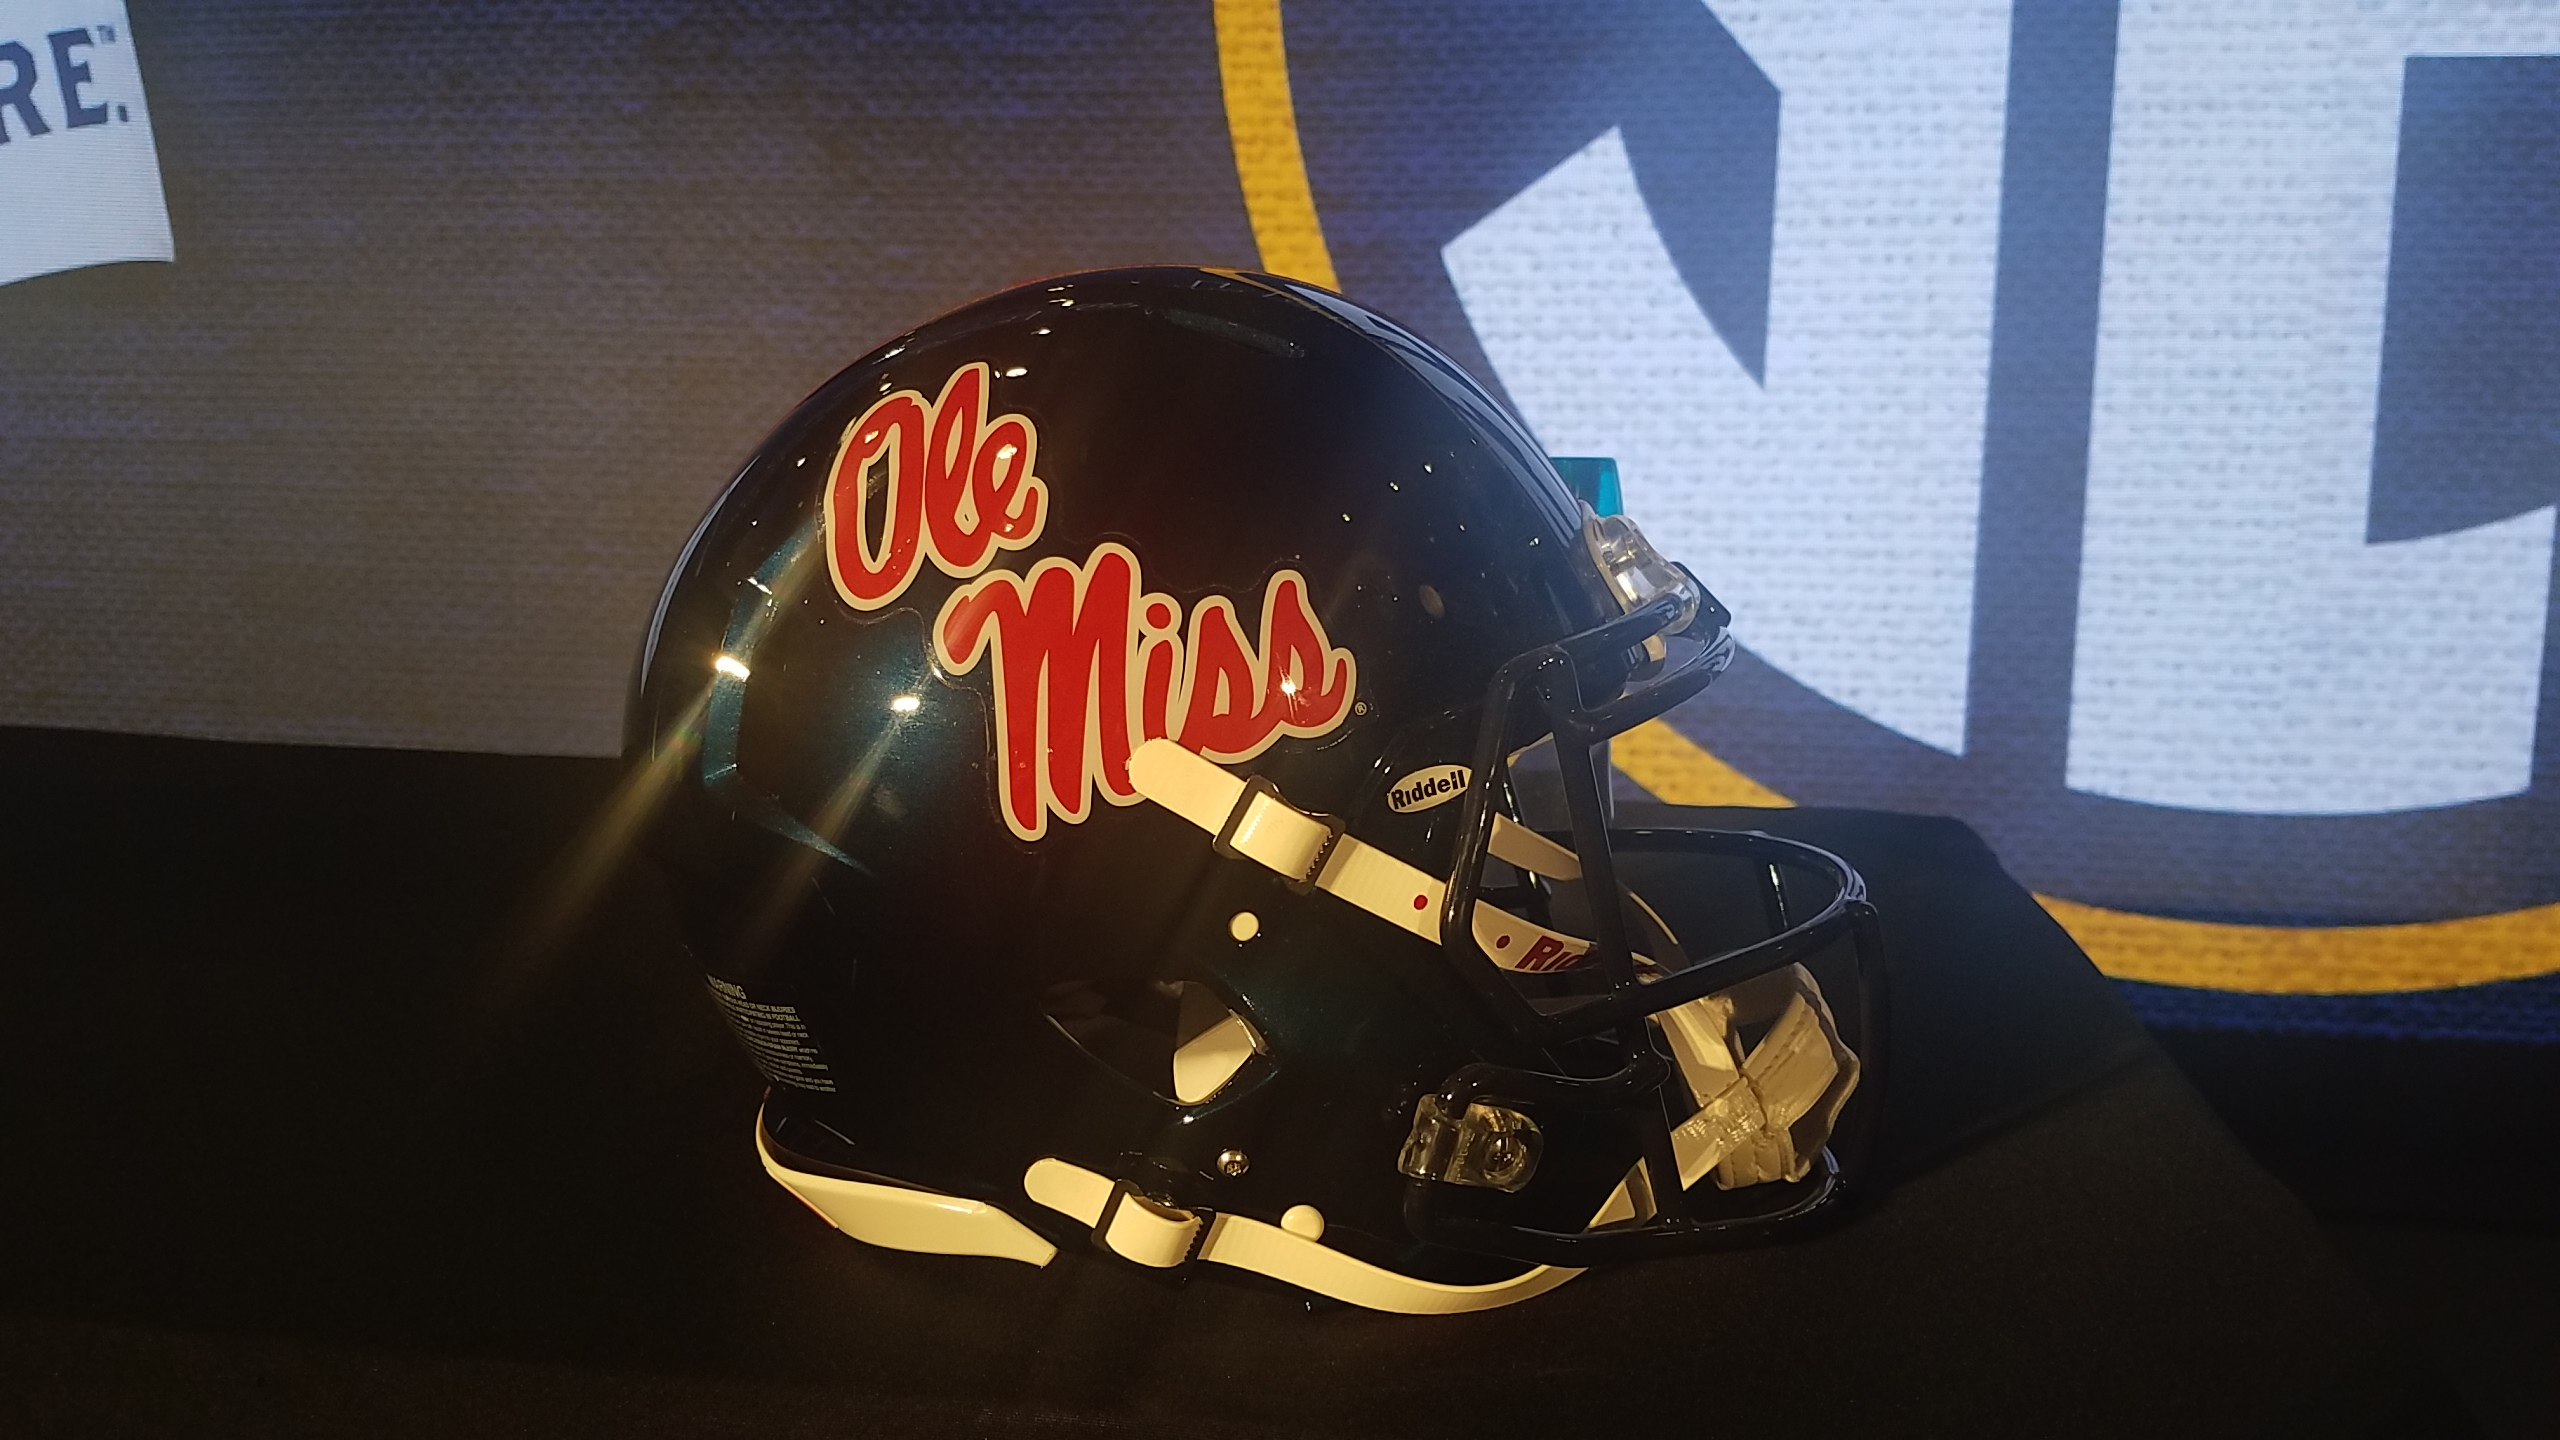 VIDEOS/PODCASTS: Everything from Ole Miss at #SECMD21